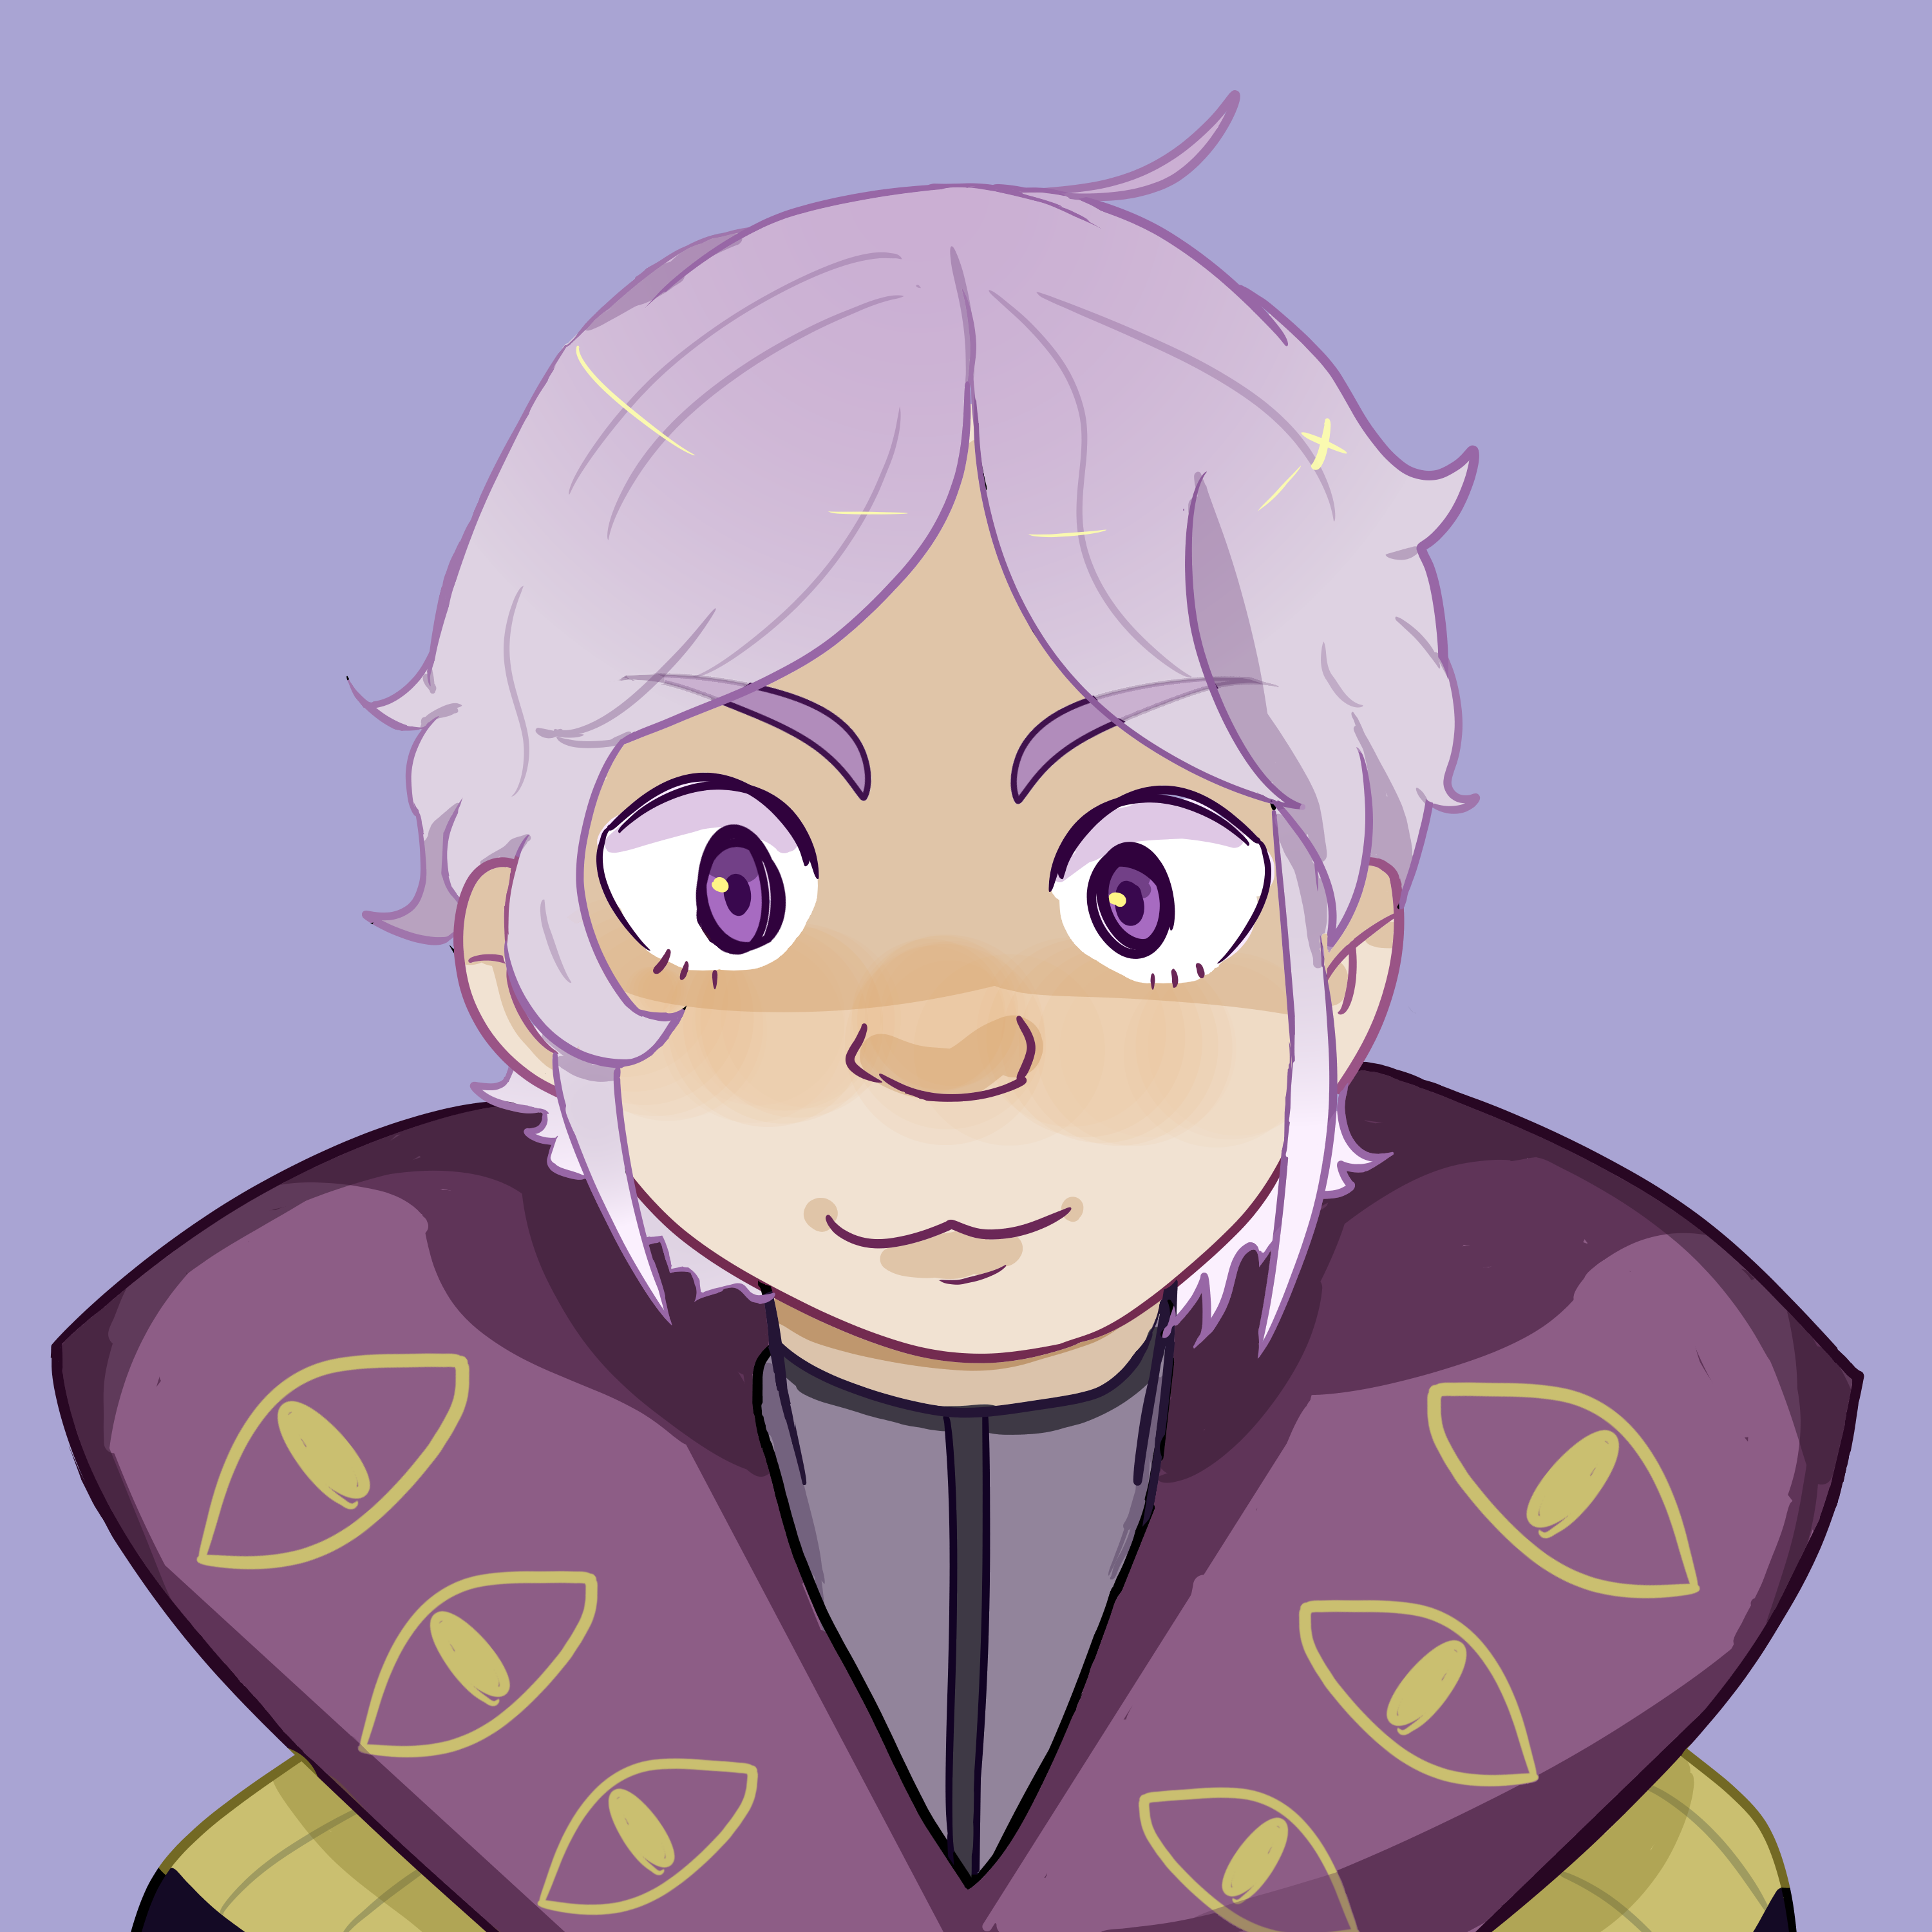 Henry - Fire Emblem Awakening by Ninayy on DeviantArtFire Emblem Awakening Henry Eyes